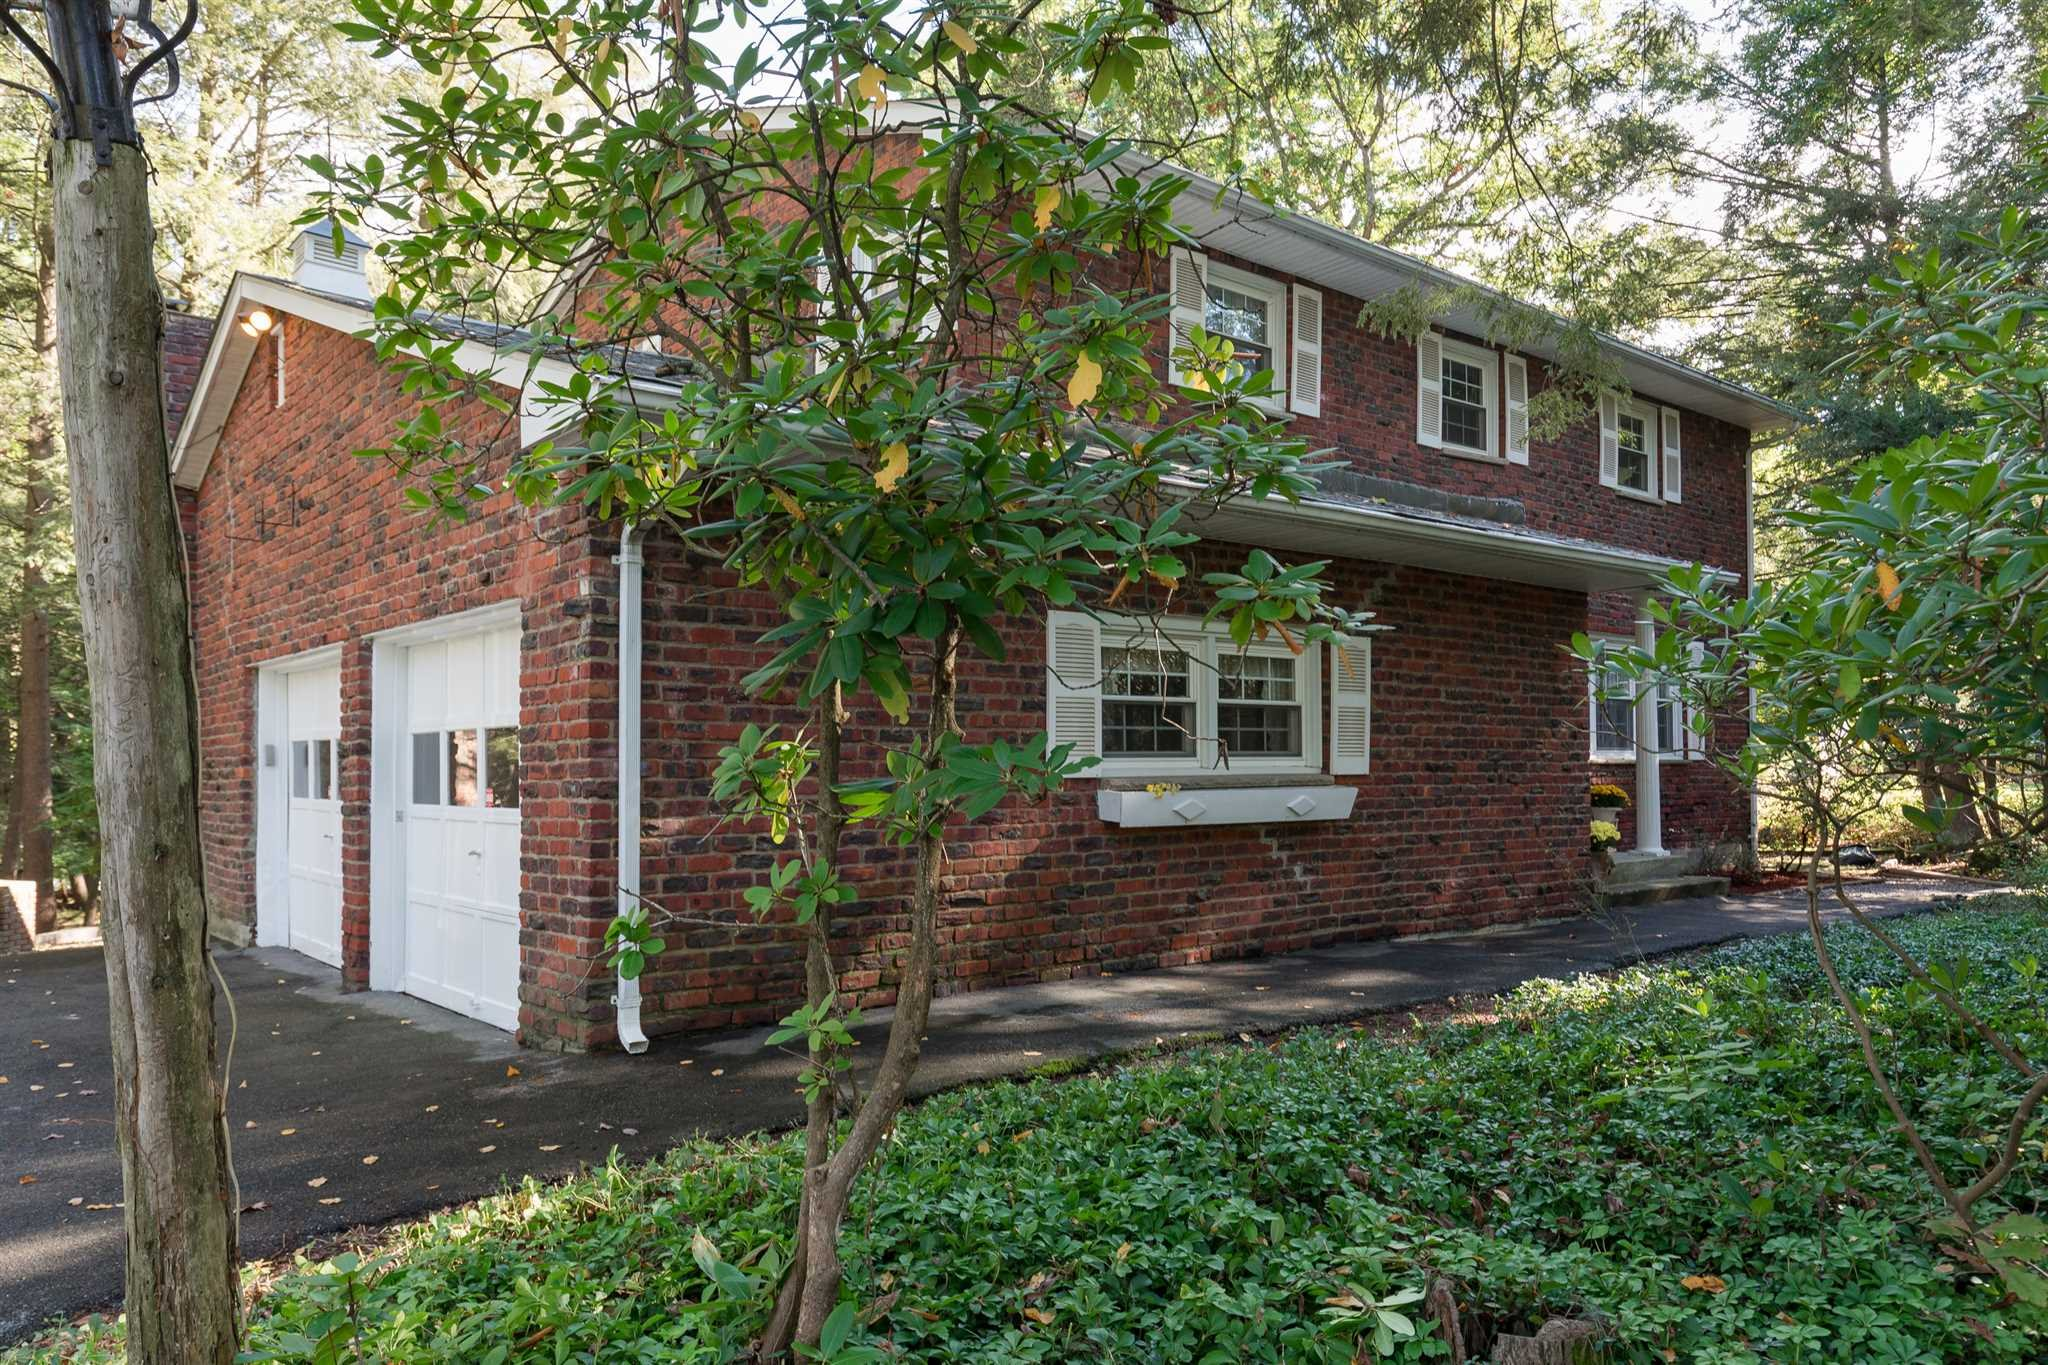 Single Family Home for Sale at 29 VICTOR Lane 29 VICTOR Lane Poughkeepsie, New York 12601 United States